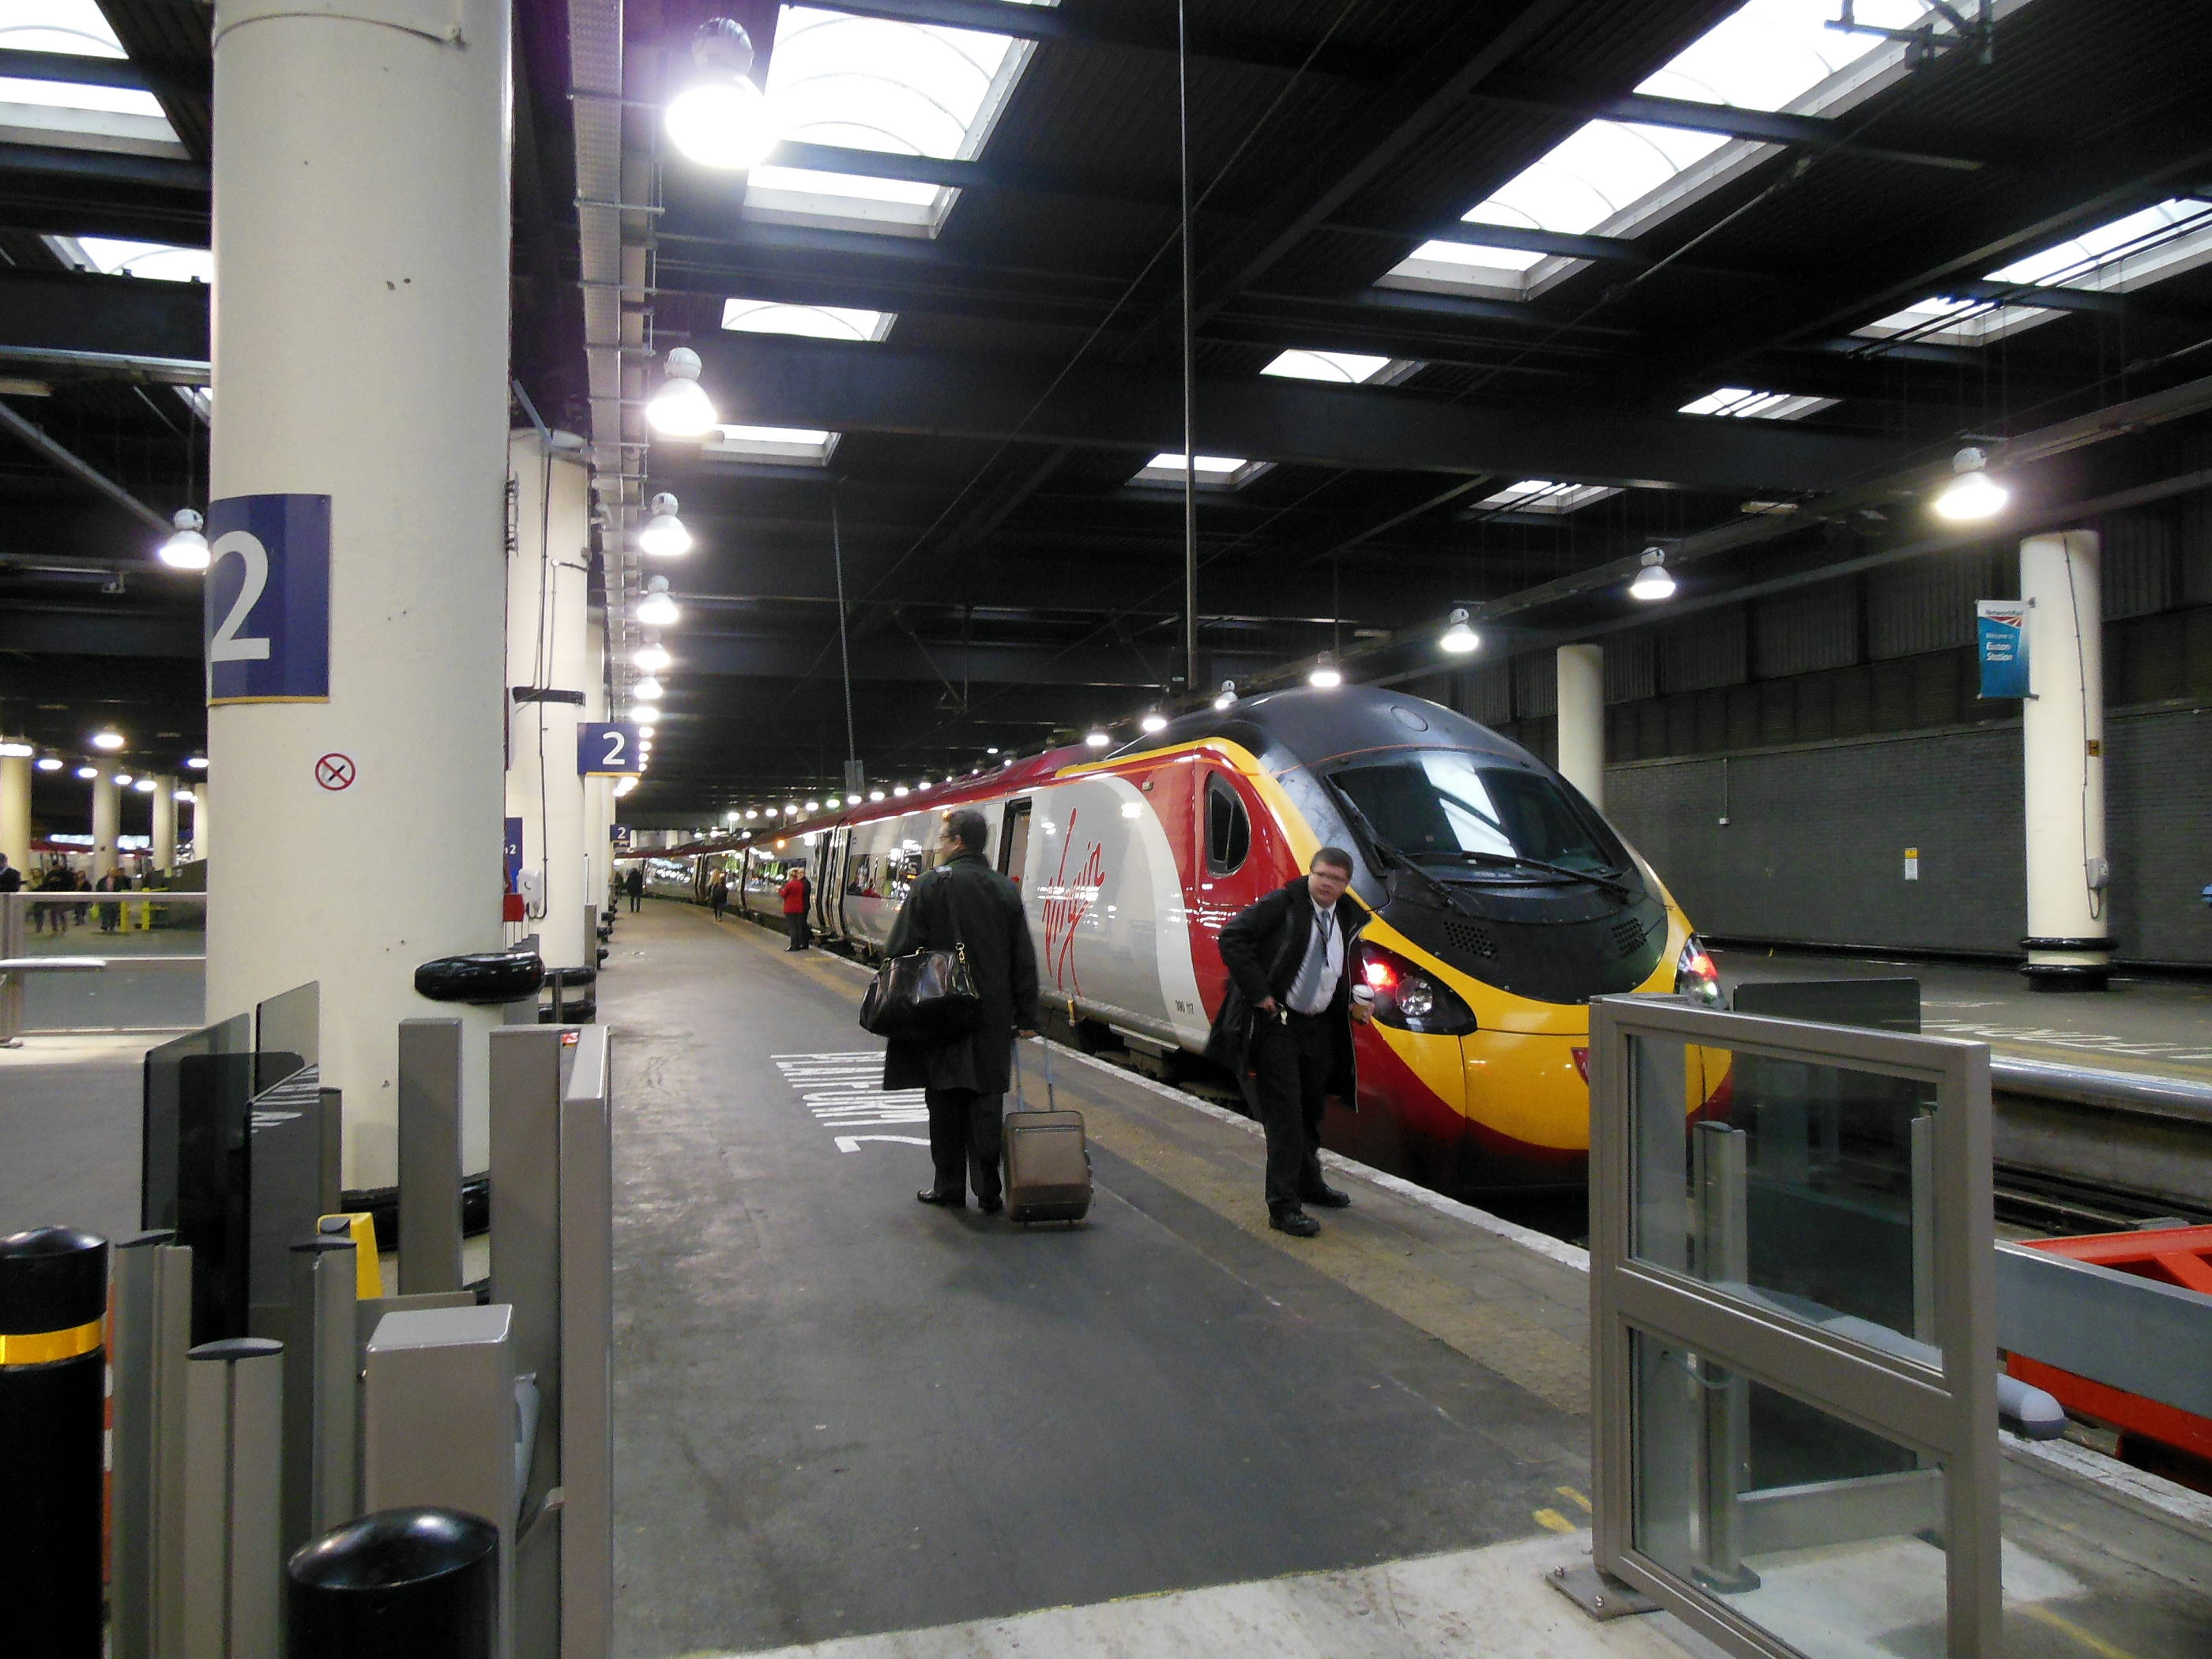 Virjin Train London Euston Staition